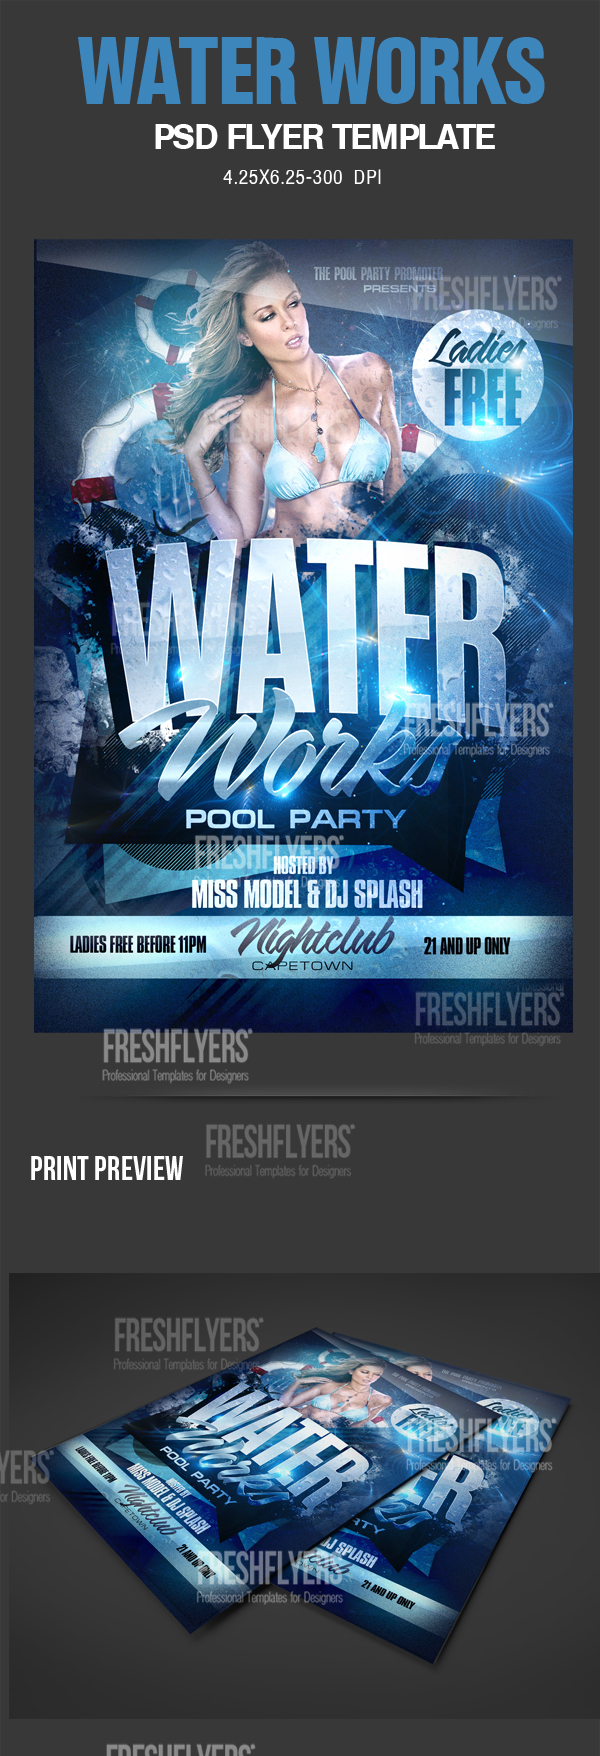 12 Free PSD Flyer Templates Pool Images